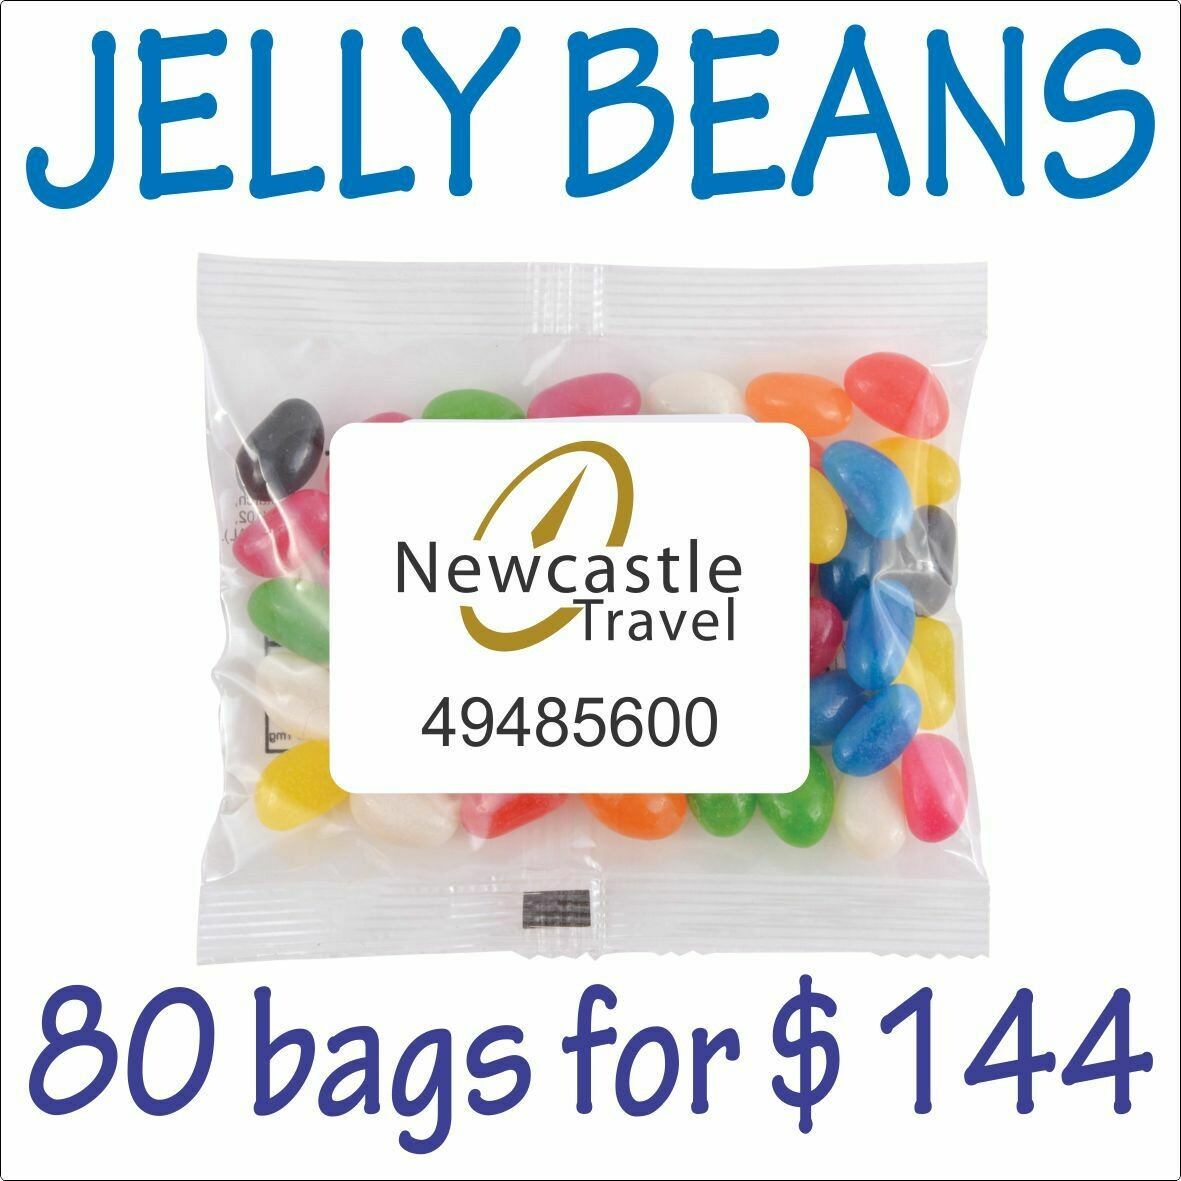 BRANDED 50gm JELLY BEANS PACKS. 80 bags for $144 - FREE DELIVERY